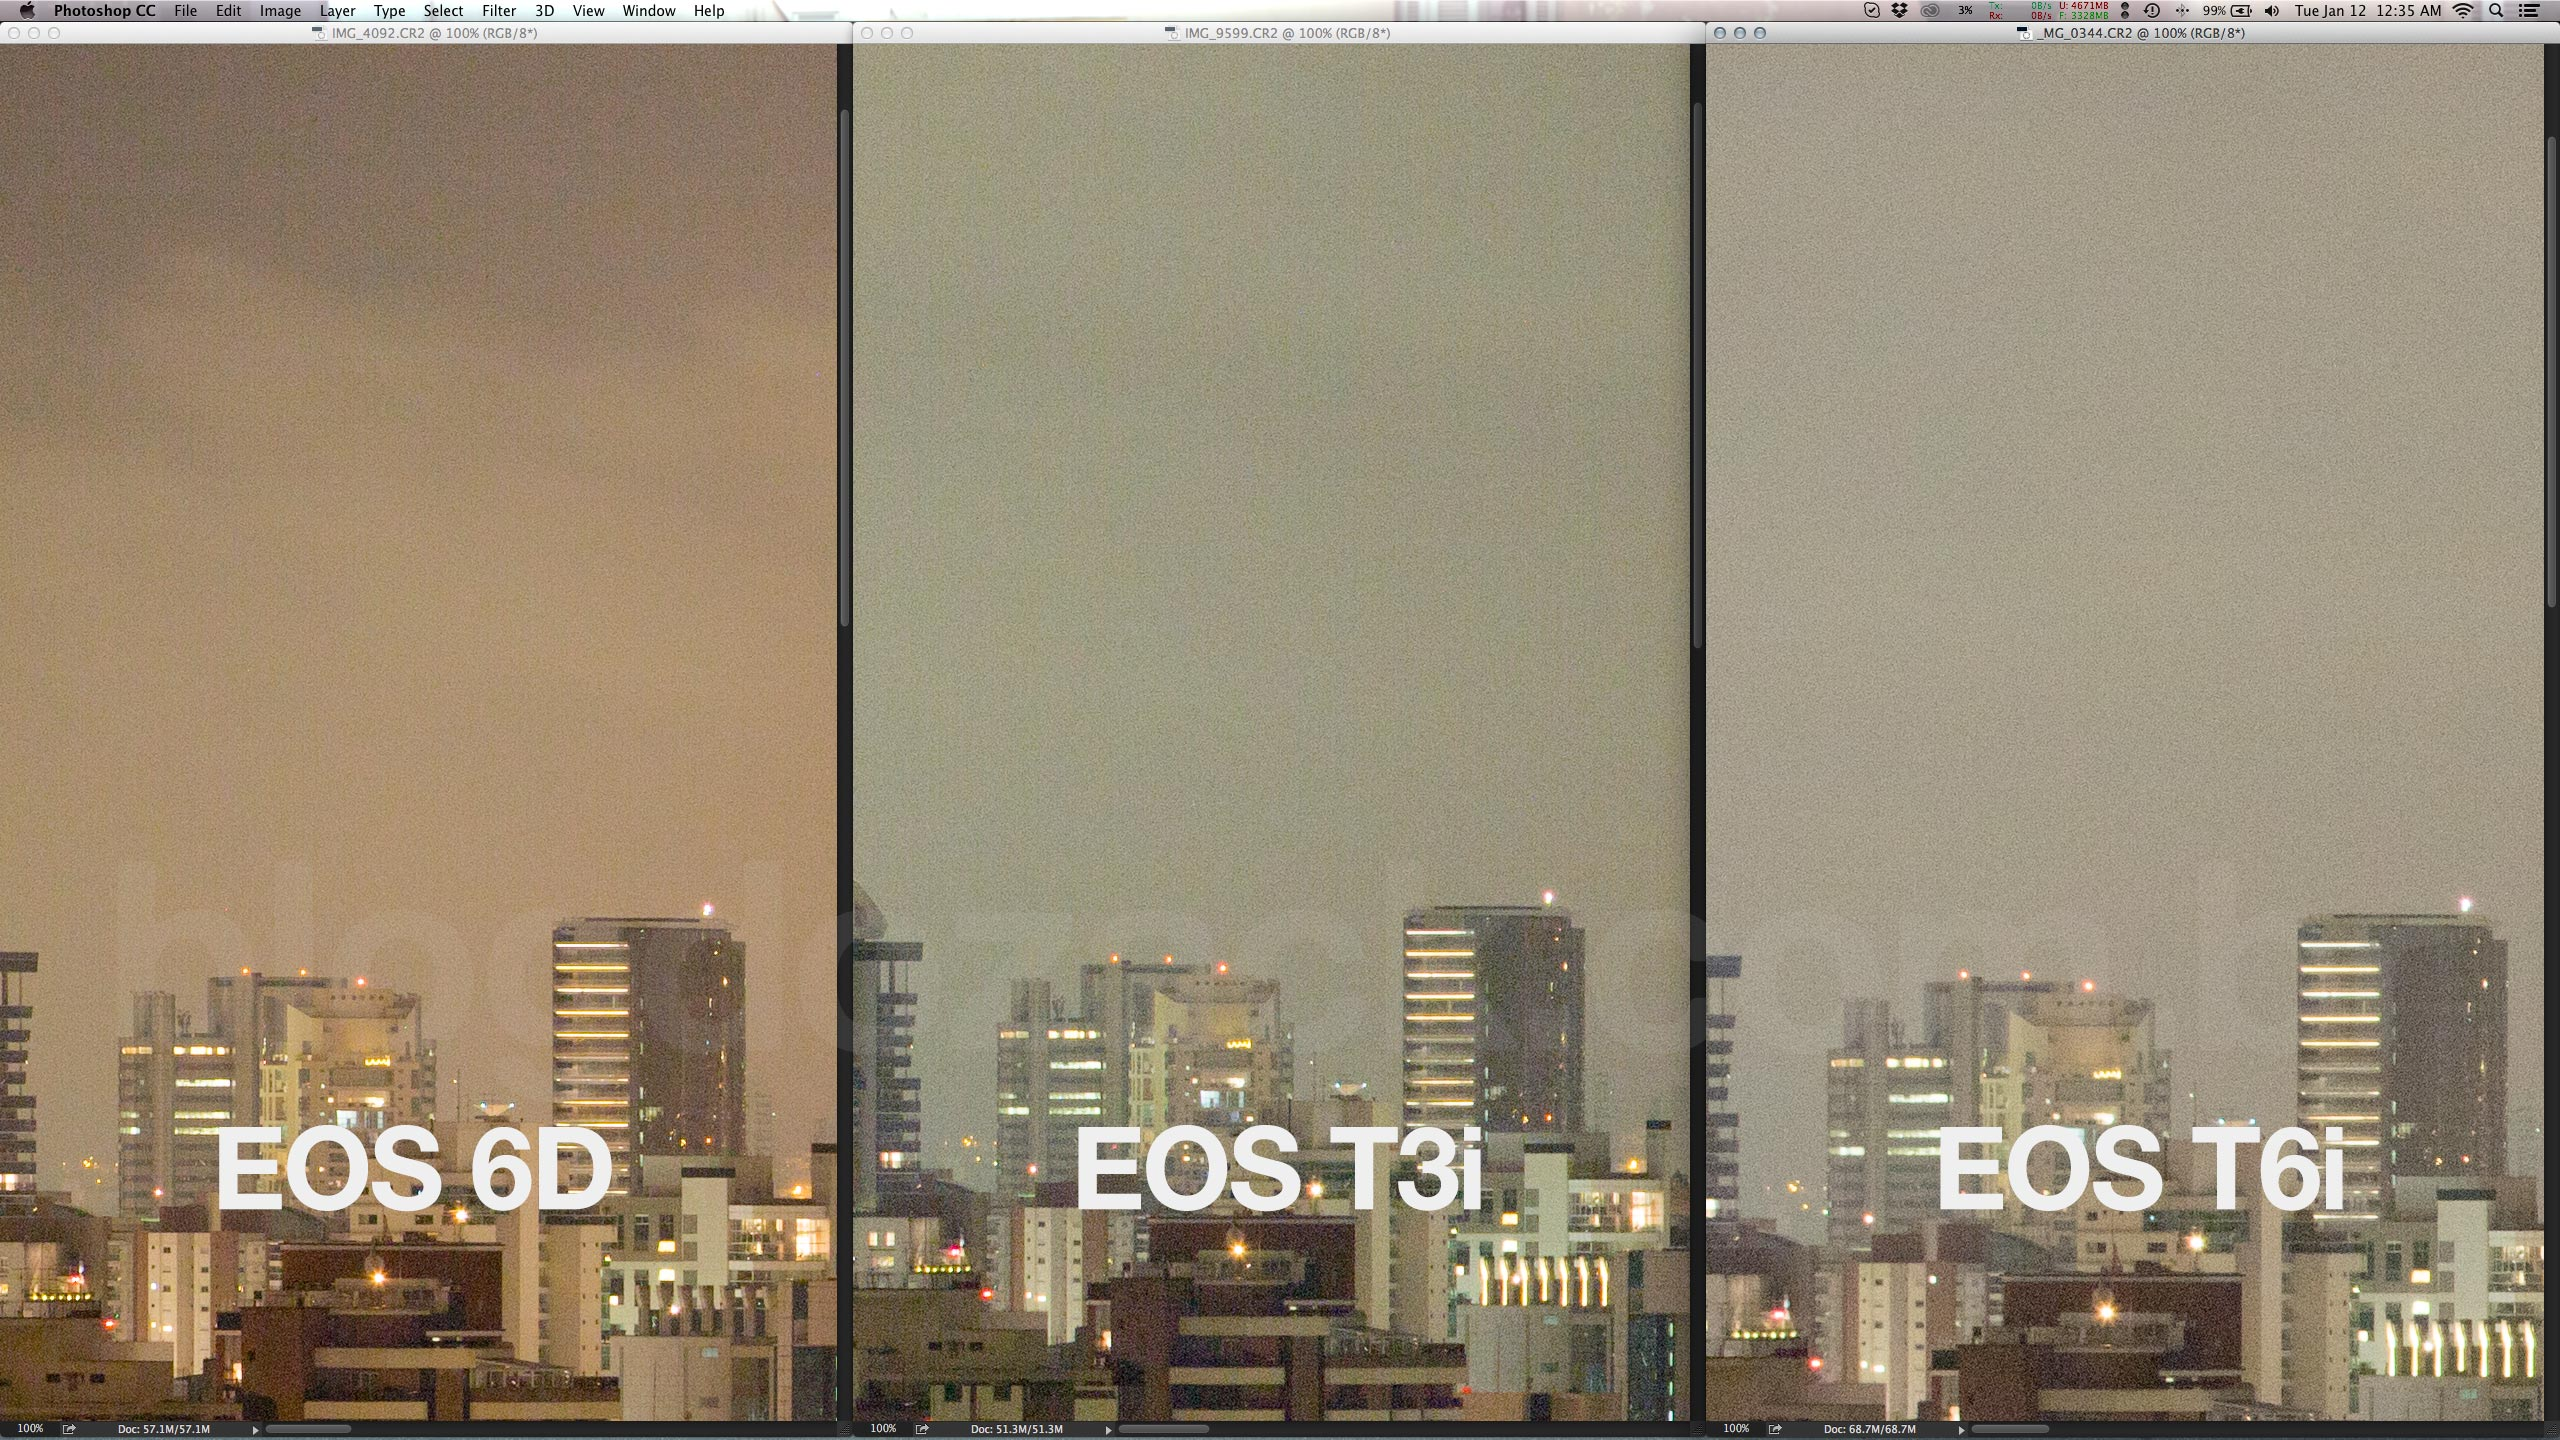 And a cleaner output than even the ageing full frame EOS 6D.